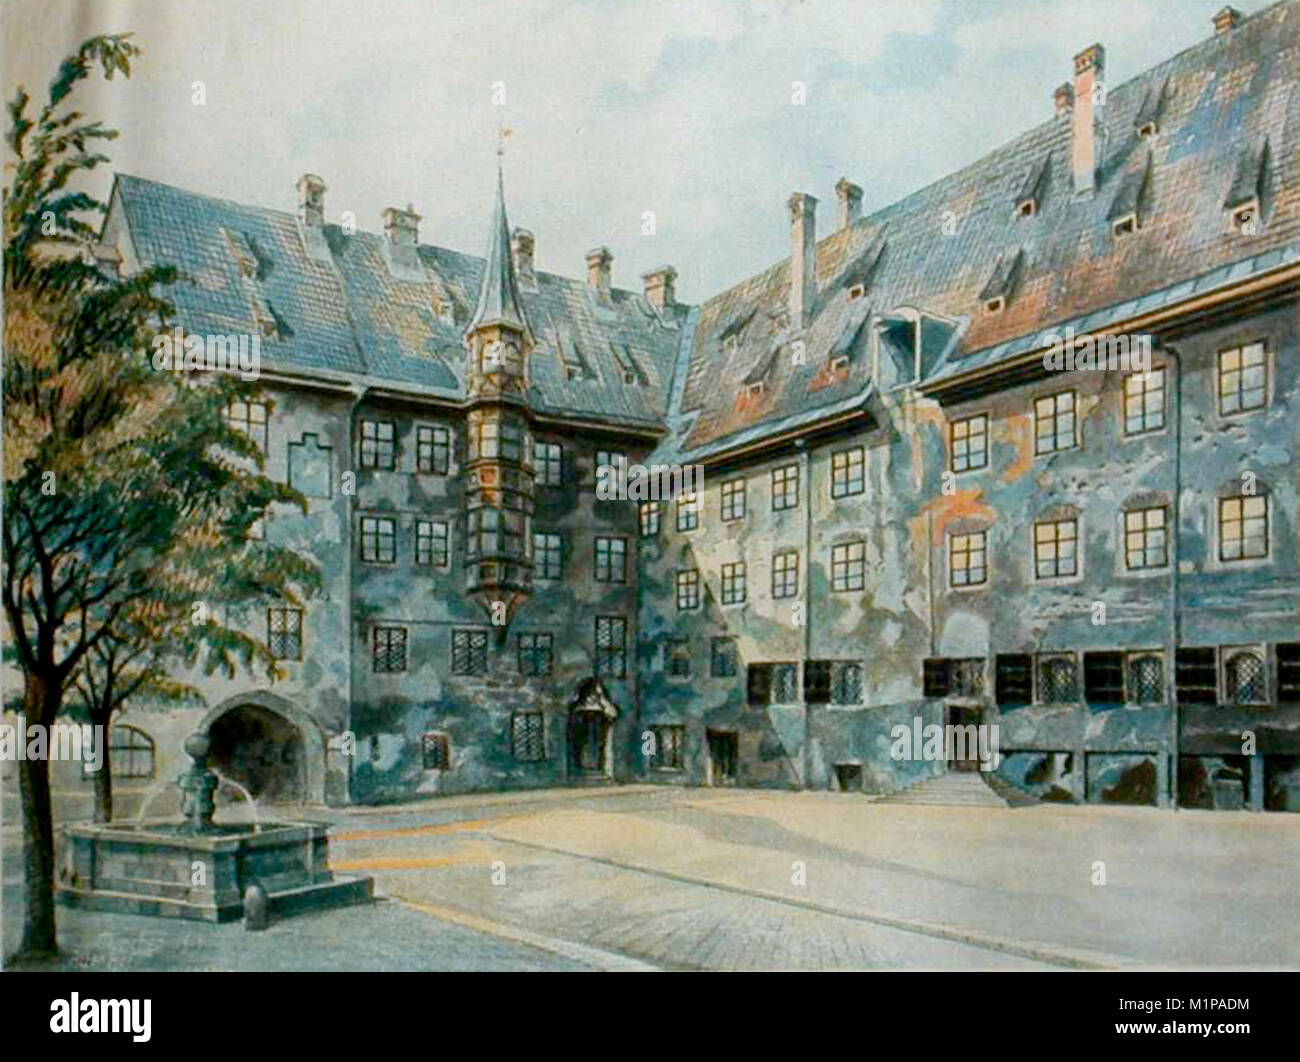 The Courtyard of the Old Residency in Munich by Adolf Hitler Stock Photo